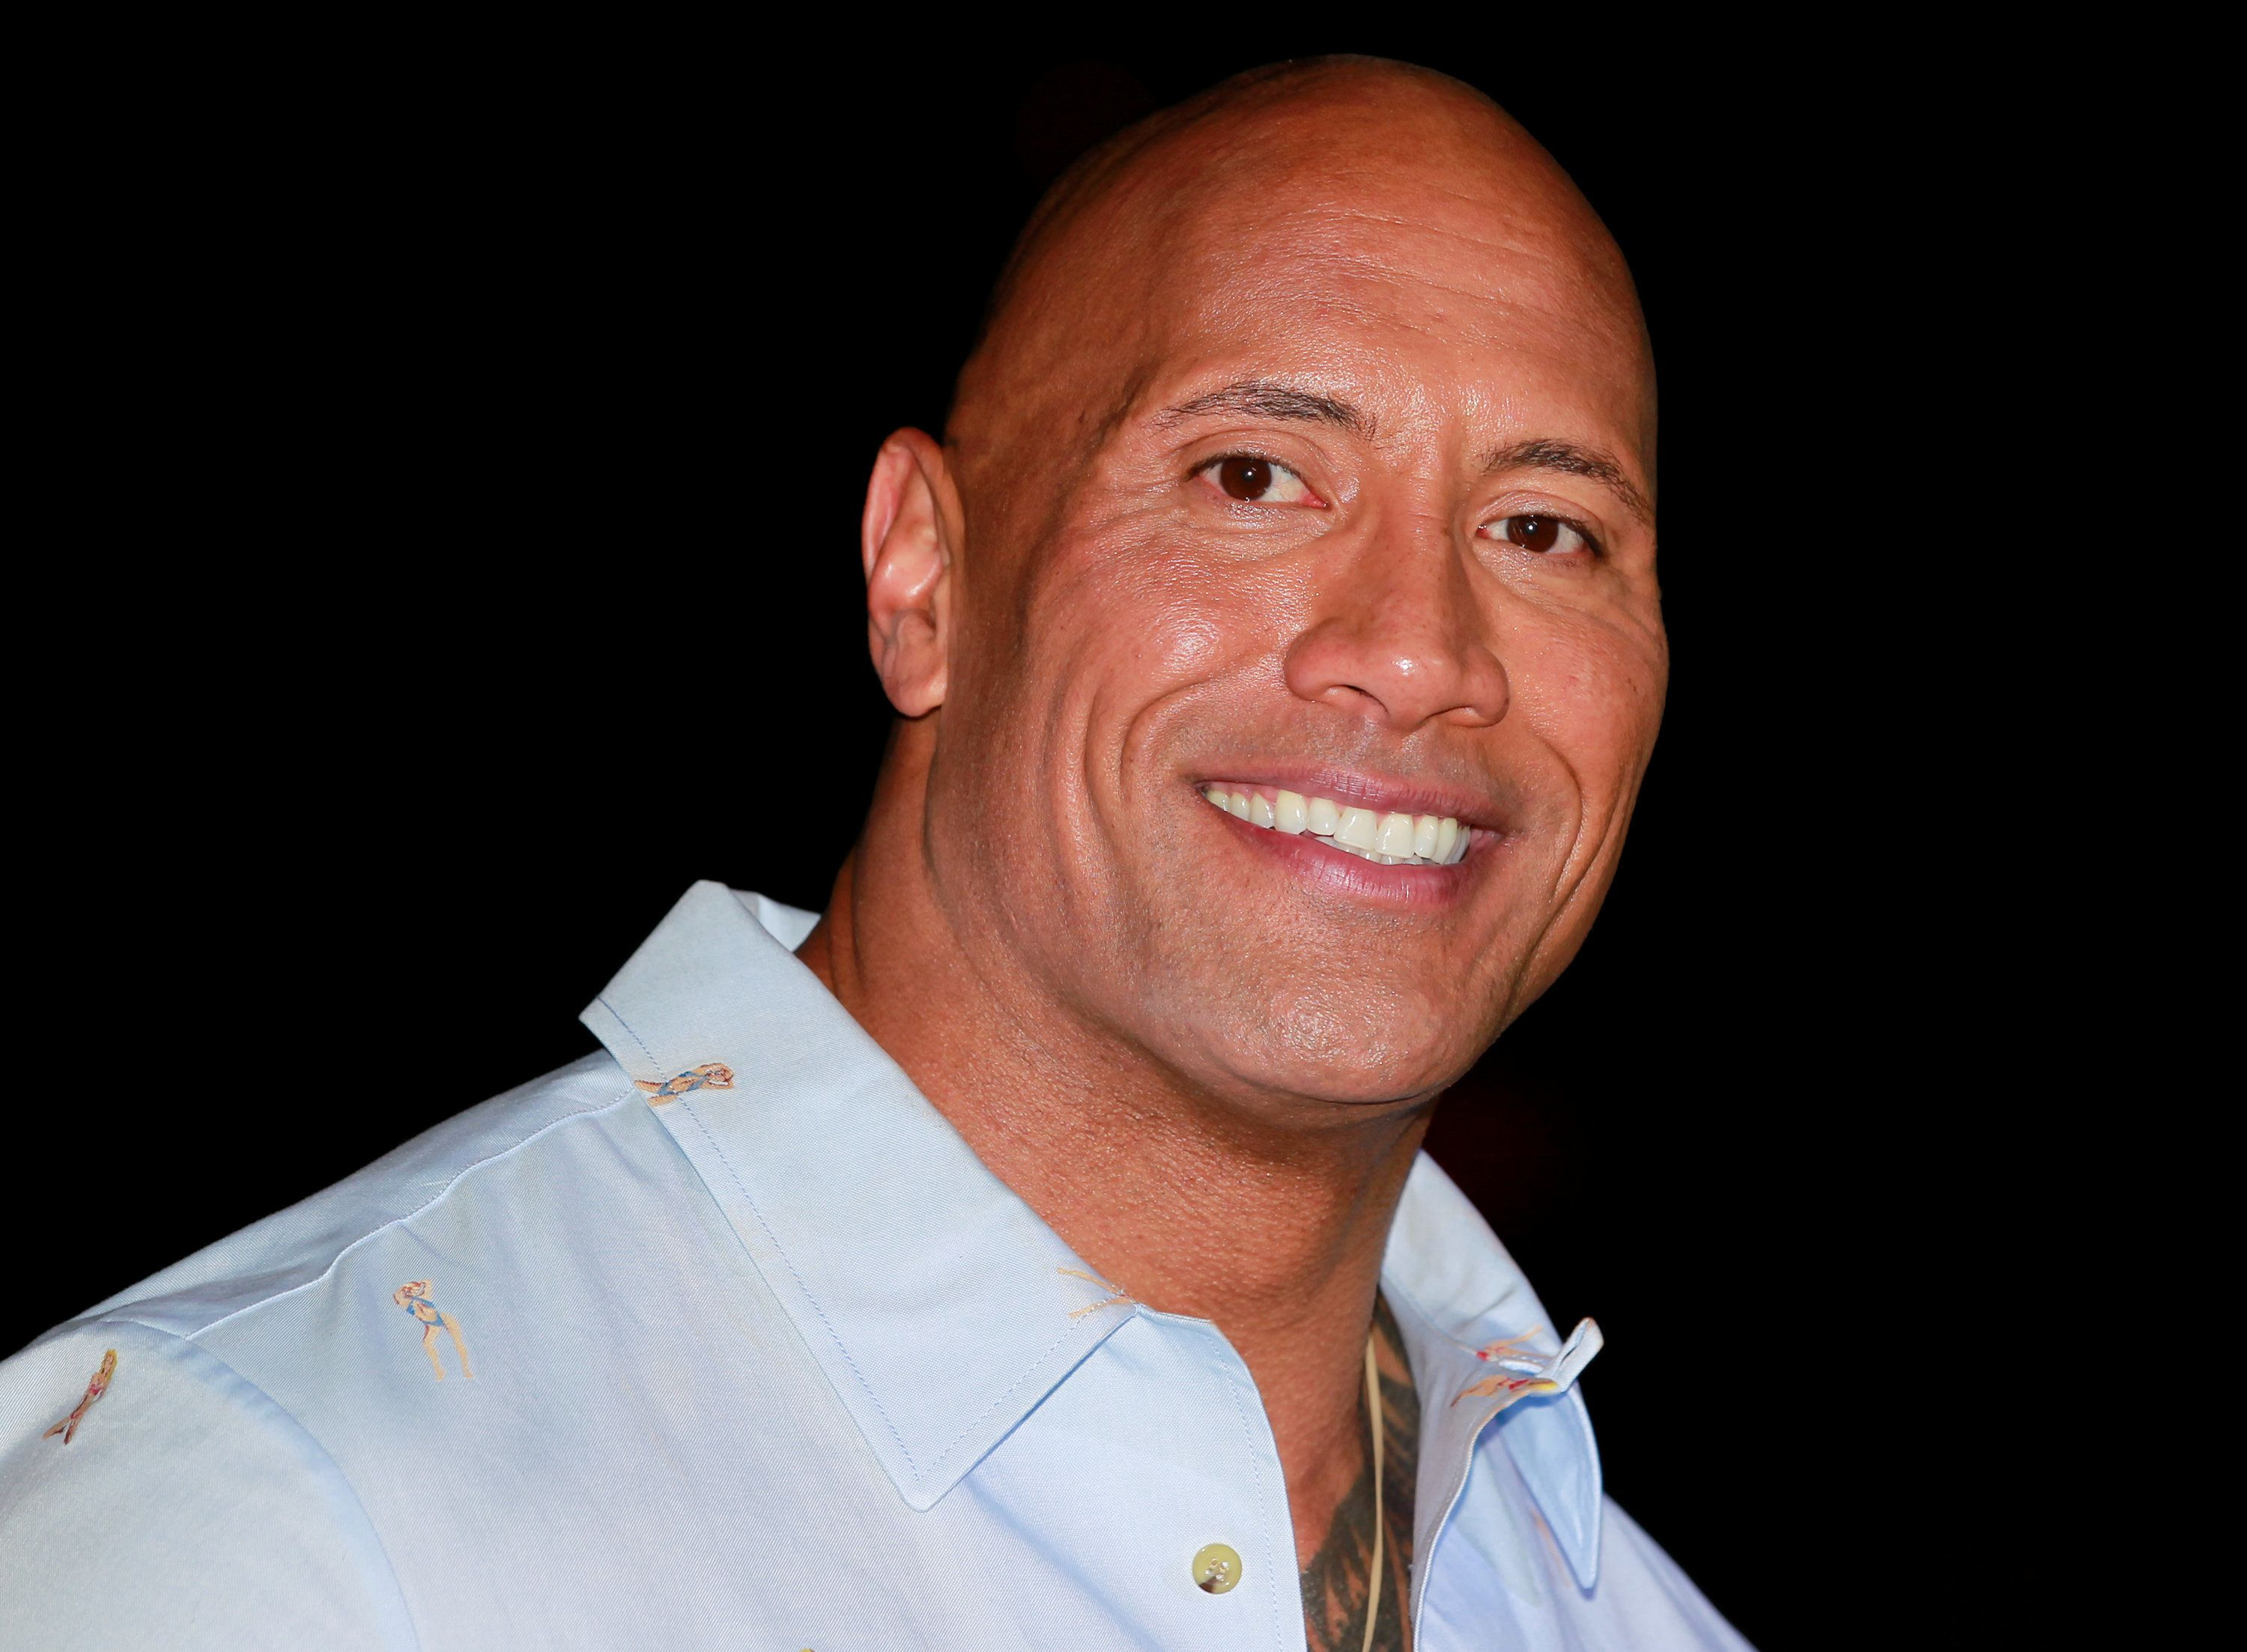 Blogger's Genius 'The Rock Test' Helps Men Confused About Sexual